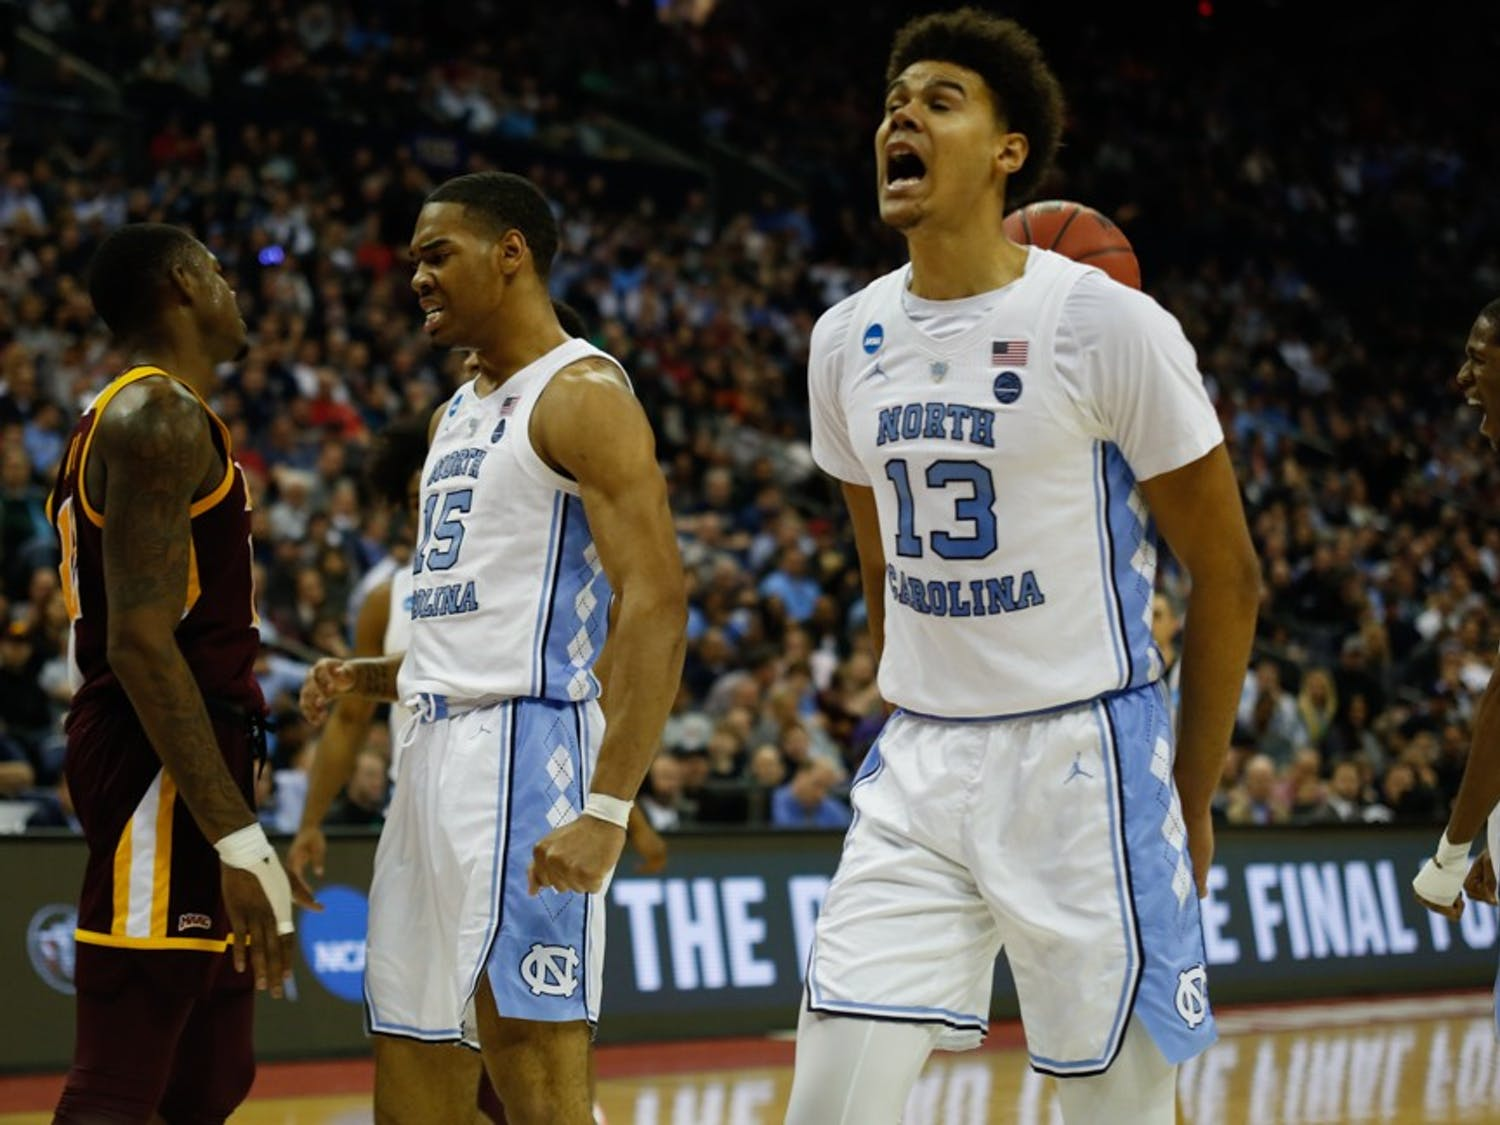 Senior guard Cameron Johnson (13) was the leading scorer with 21 points on March 22, 2019 during the first round of the NCAA Championship against Iona at Nationwide Arena in Columbus, Ohio.